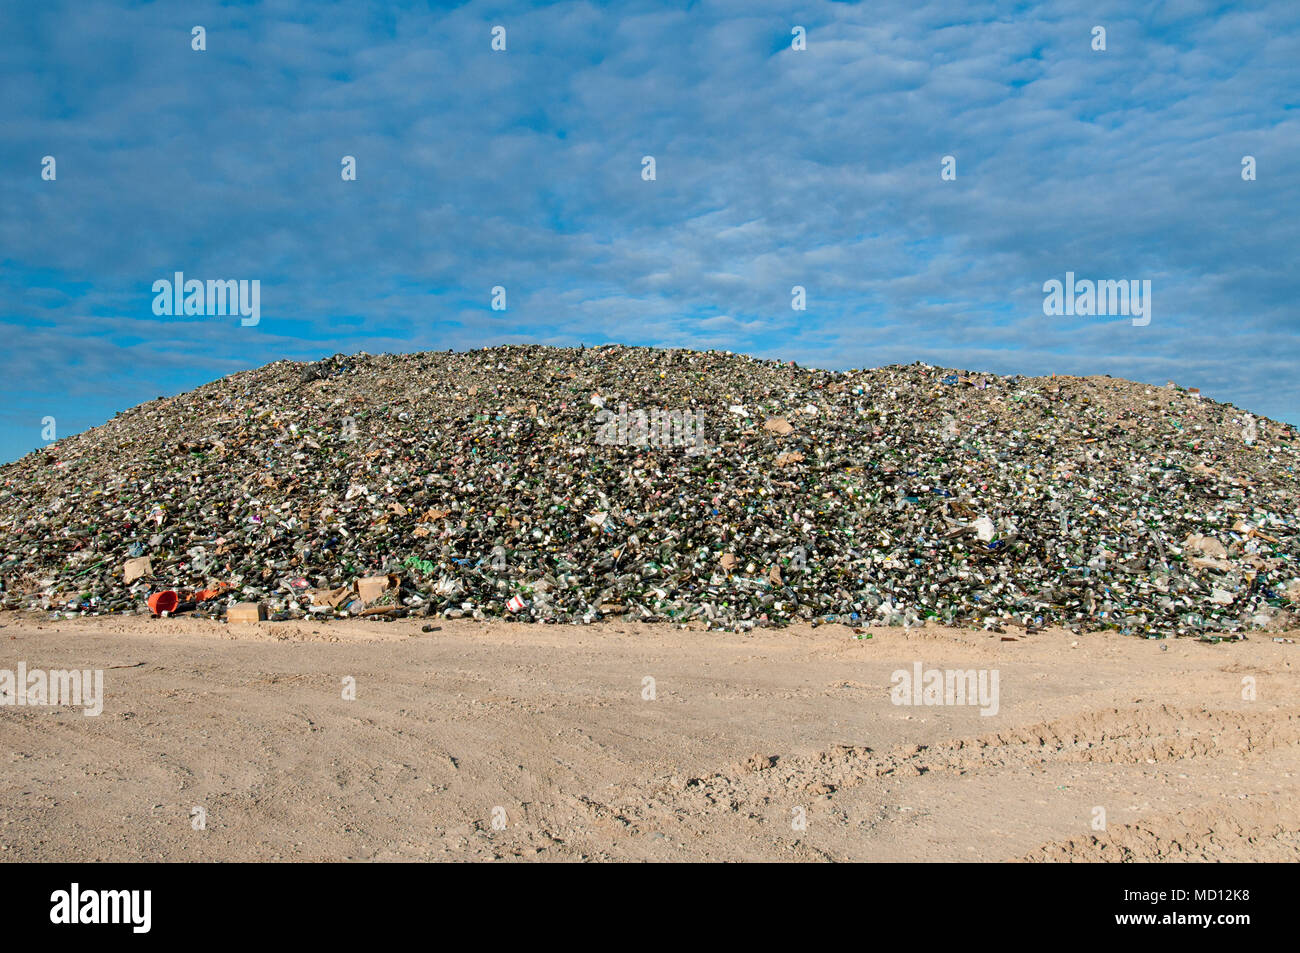 Mountain of glass bottles to be recycled - Stock Image